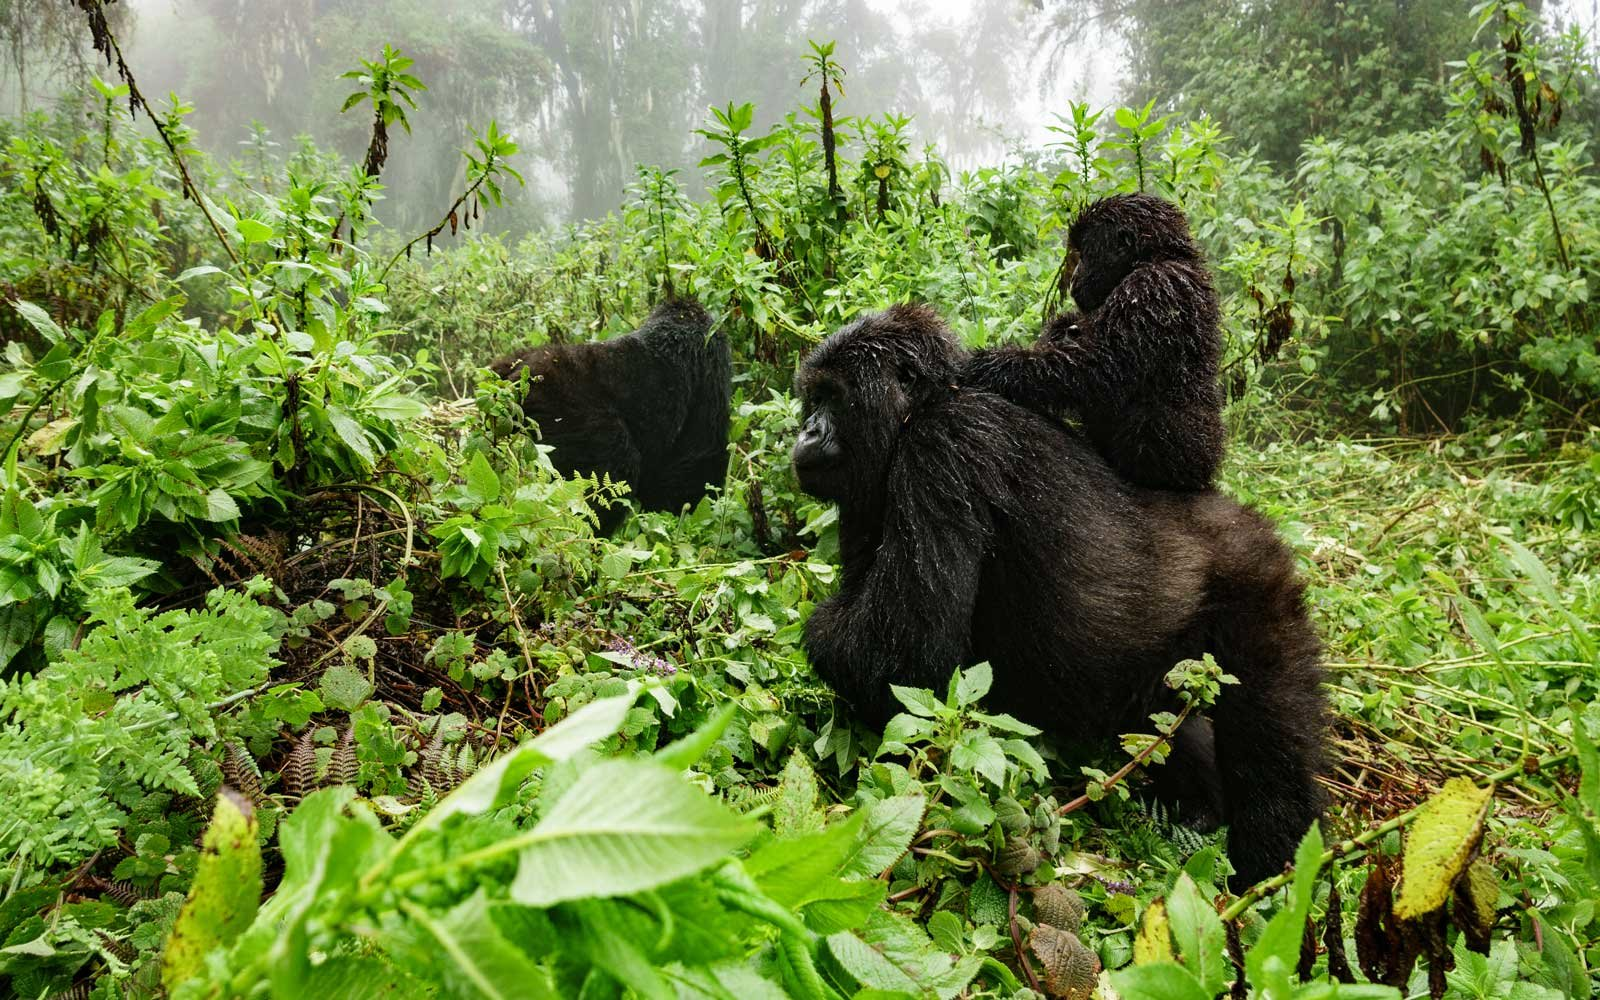 Female gorilla with baby in Virunga National Park